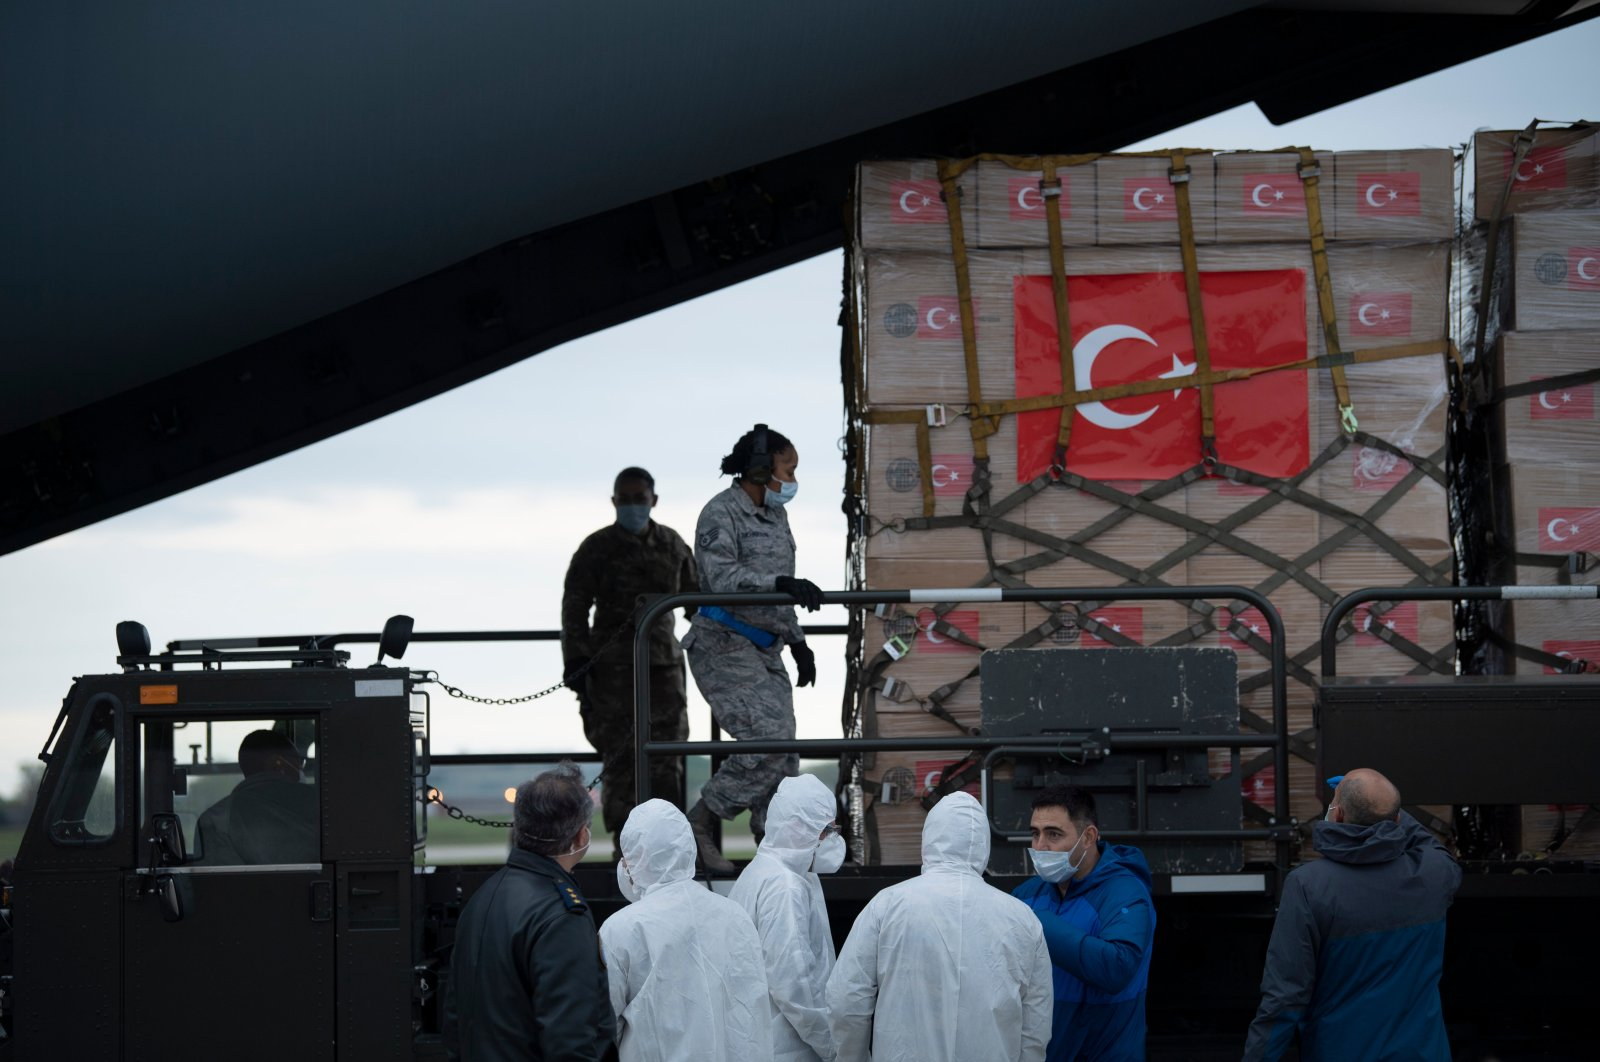 A Turkish military cargo plane with medical supplies and protective equipment to combat COVID-19 in the US is unloaded at Andrews Air Force Base, in Maryland, April 28, 2020. (AFP)